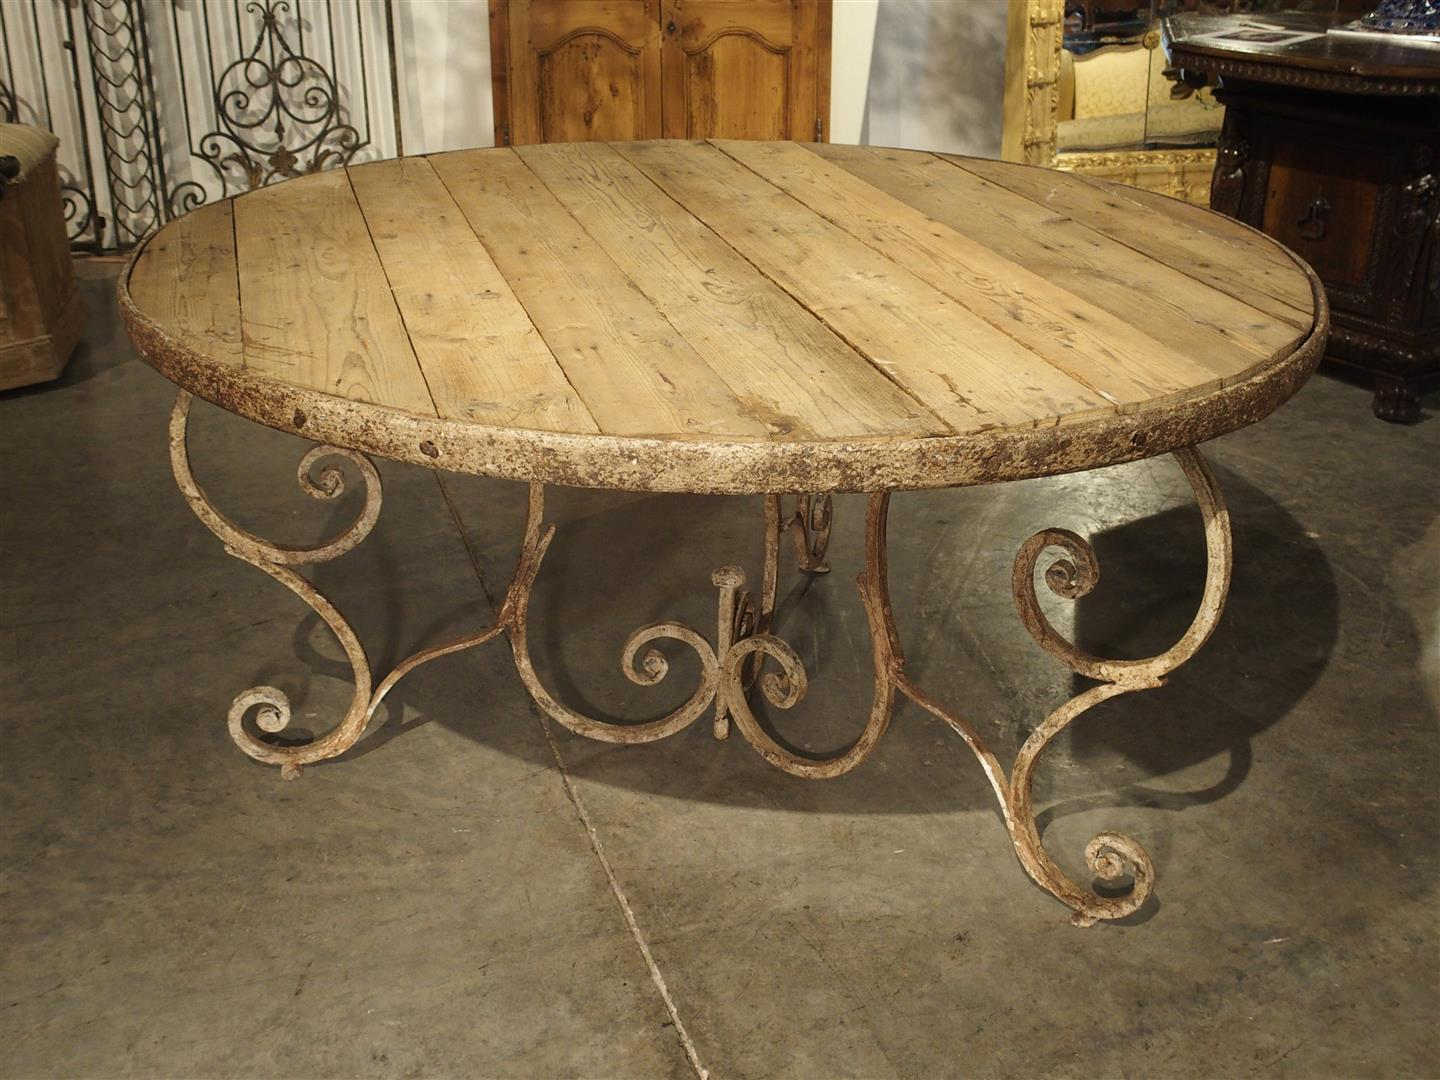 Round Wooden Top Dining Table with 19th Century Iron Base, France